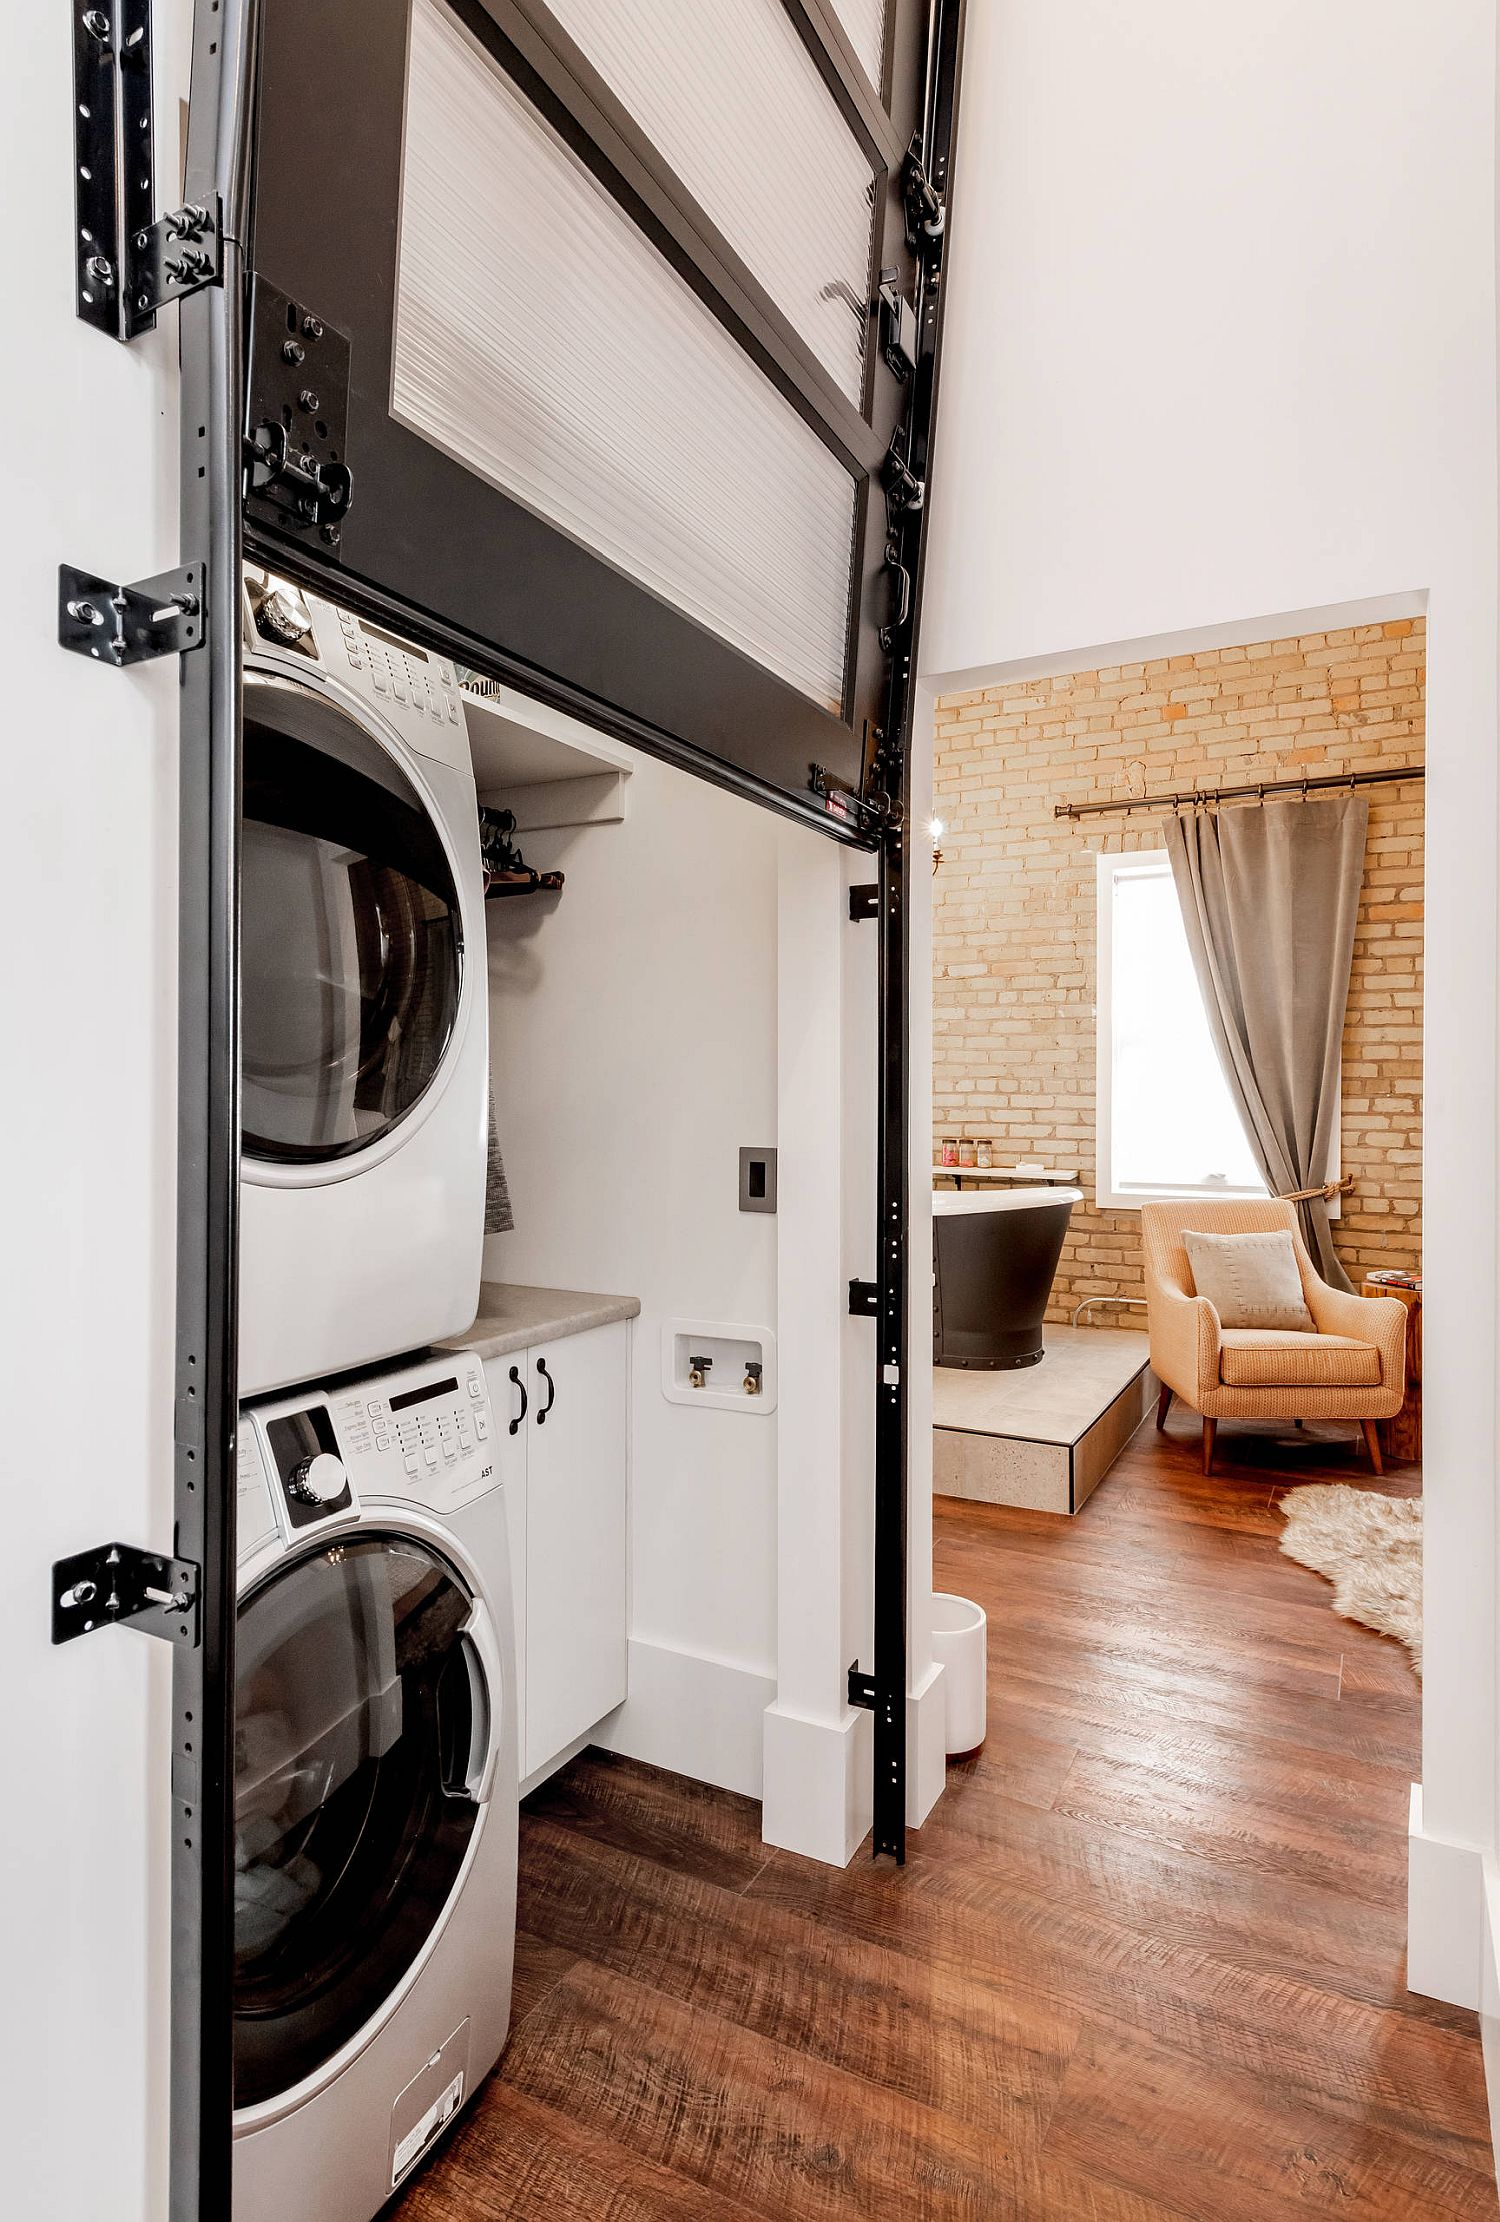 stacked washer and dryer concealed by garage style door